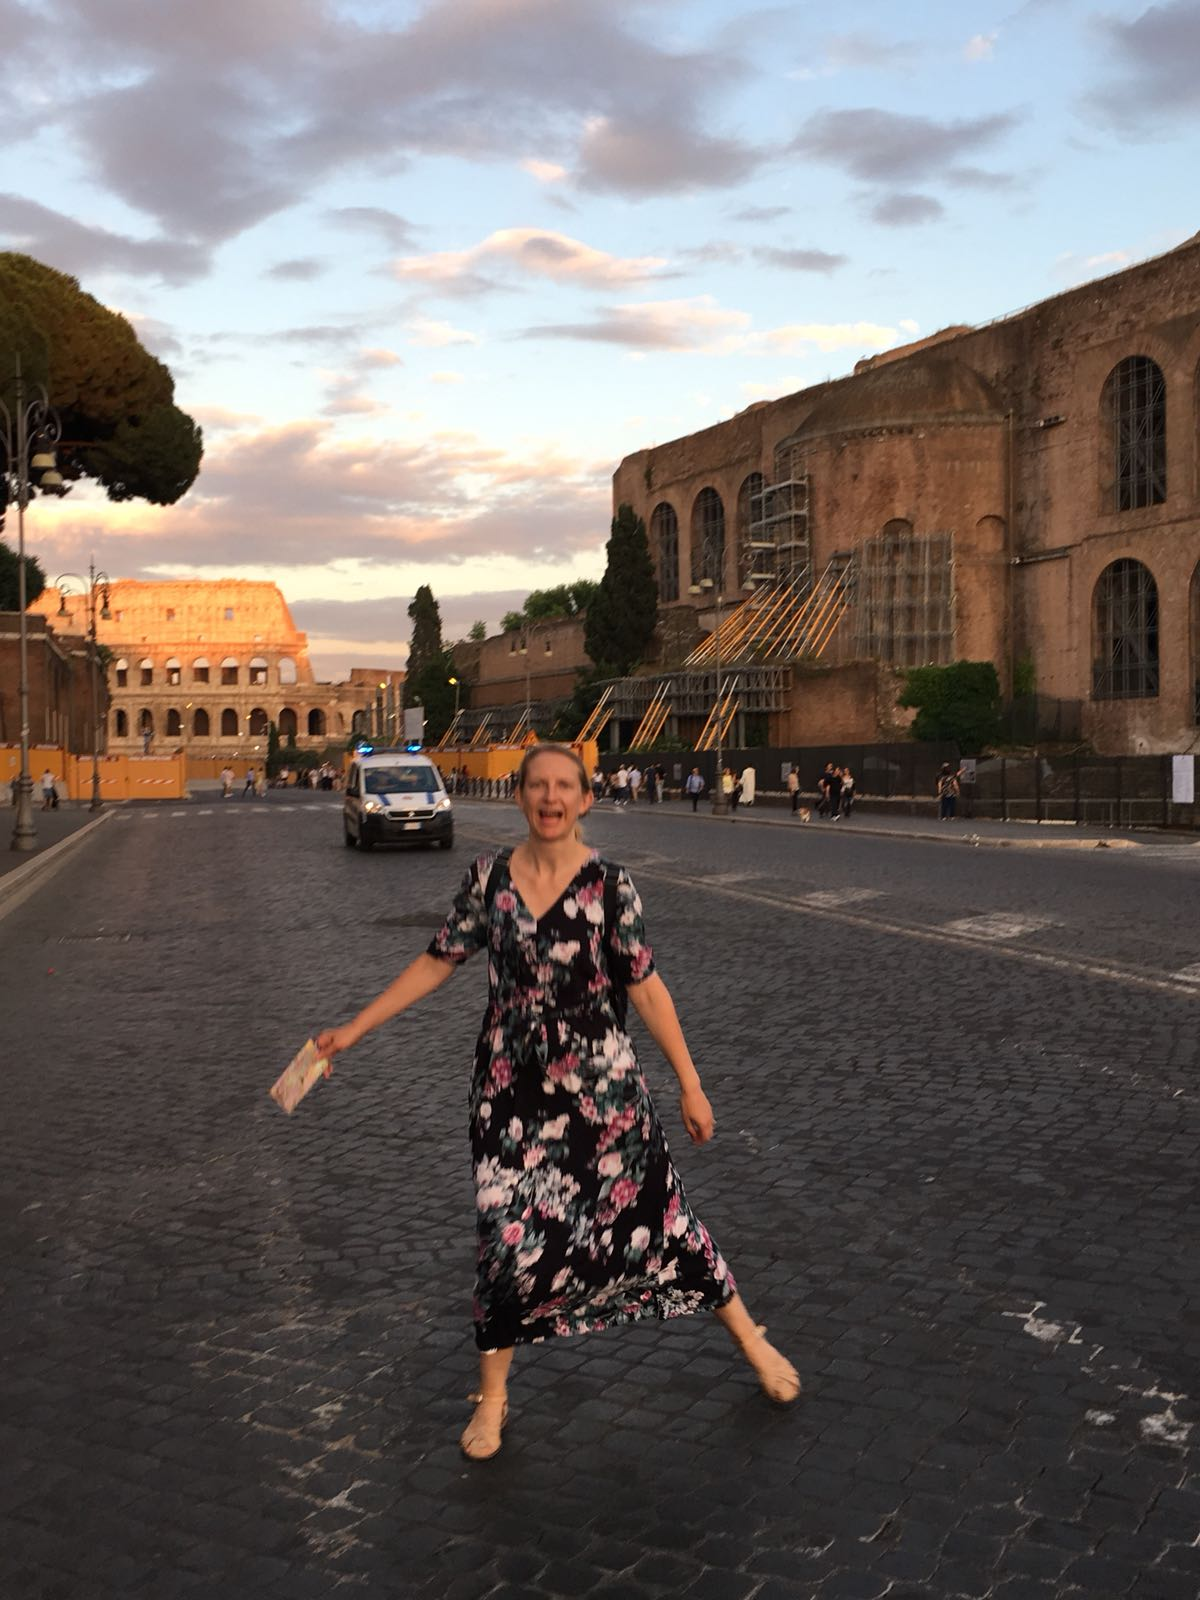 Genuine attempt at frolicking in an empty Roman street. Went for Cindy Crawford, came up  Celeste . If you don't know Celeste, do yourself a favour and click the link. Photo cred: Ez.